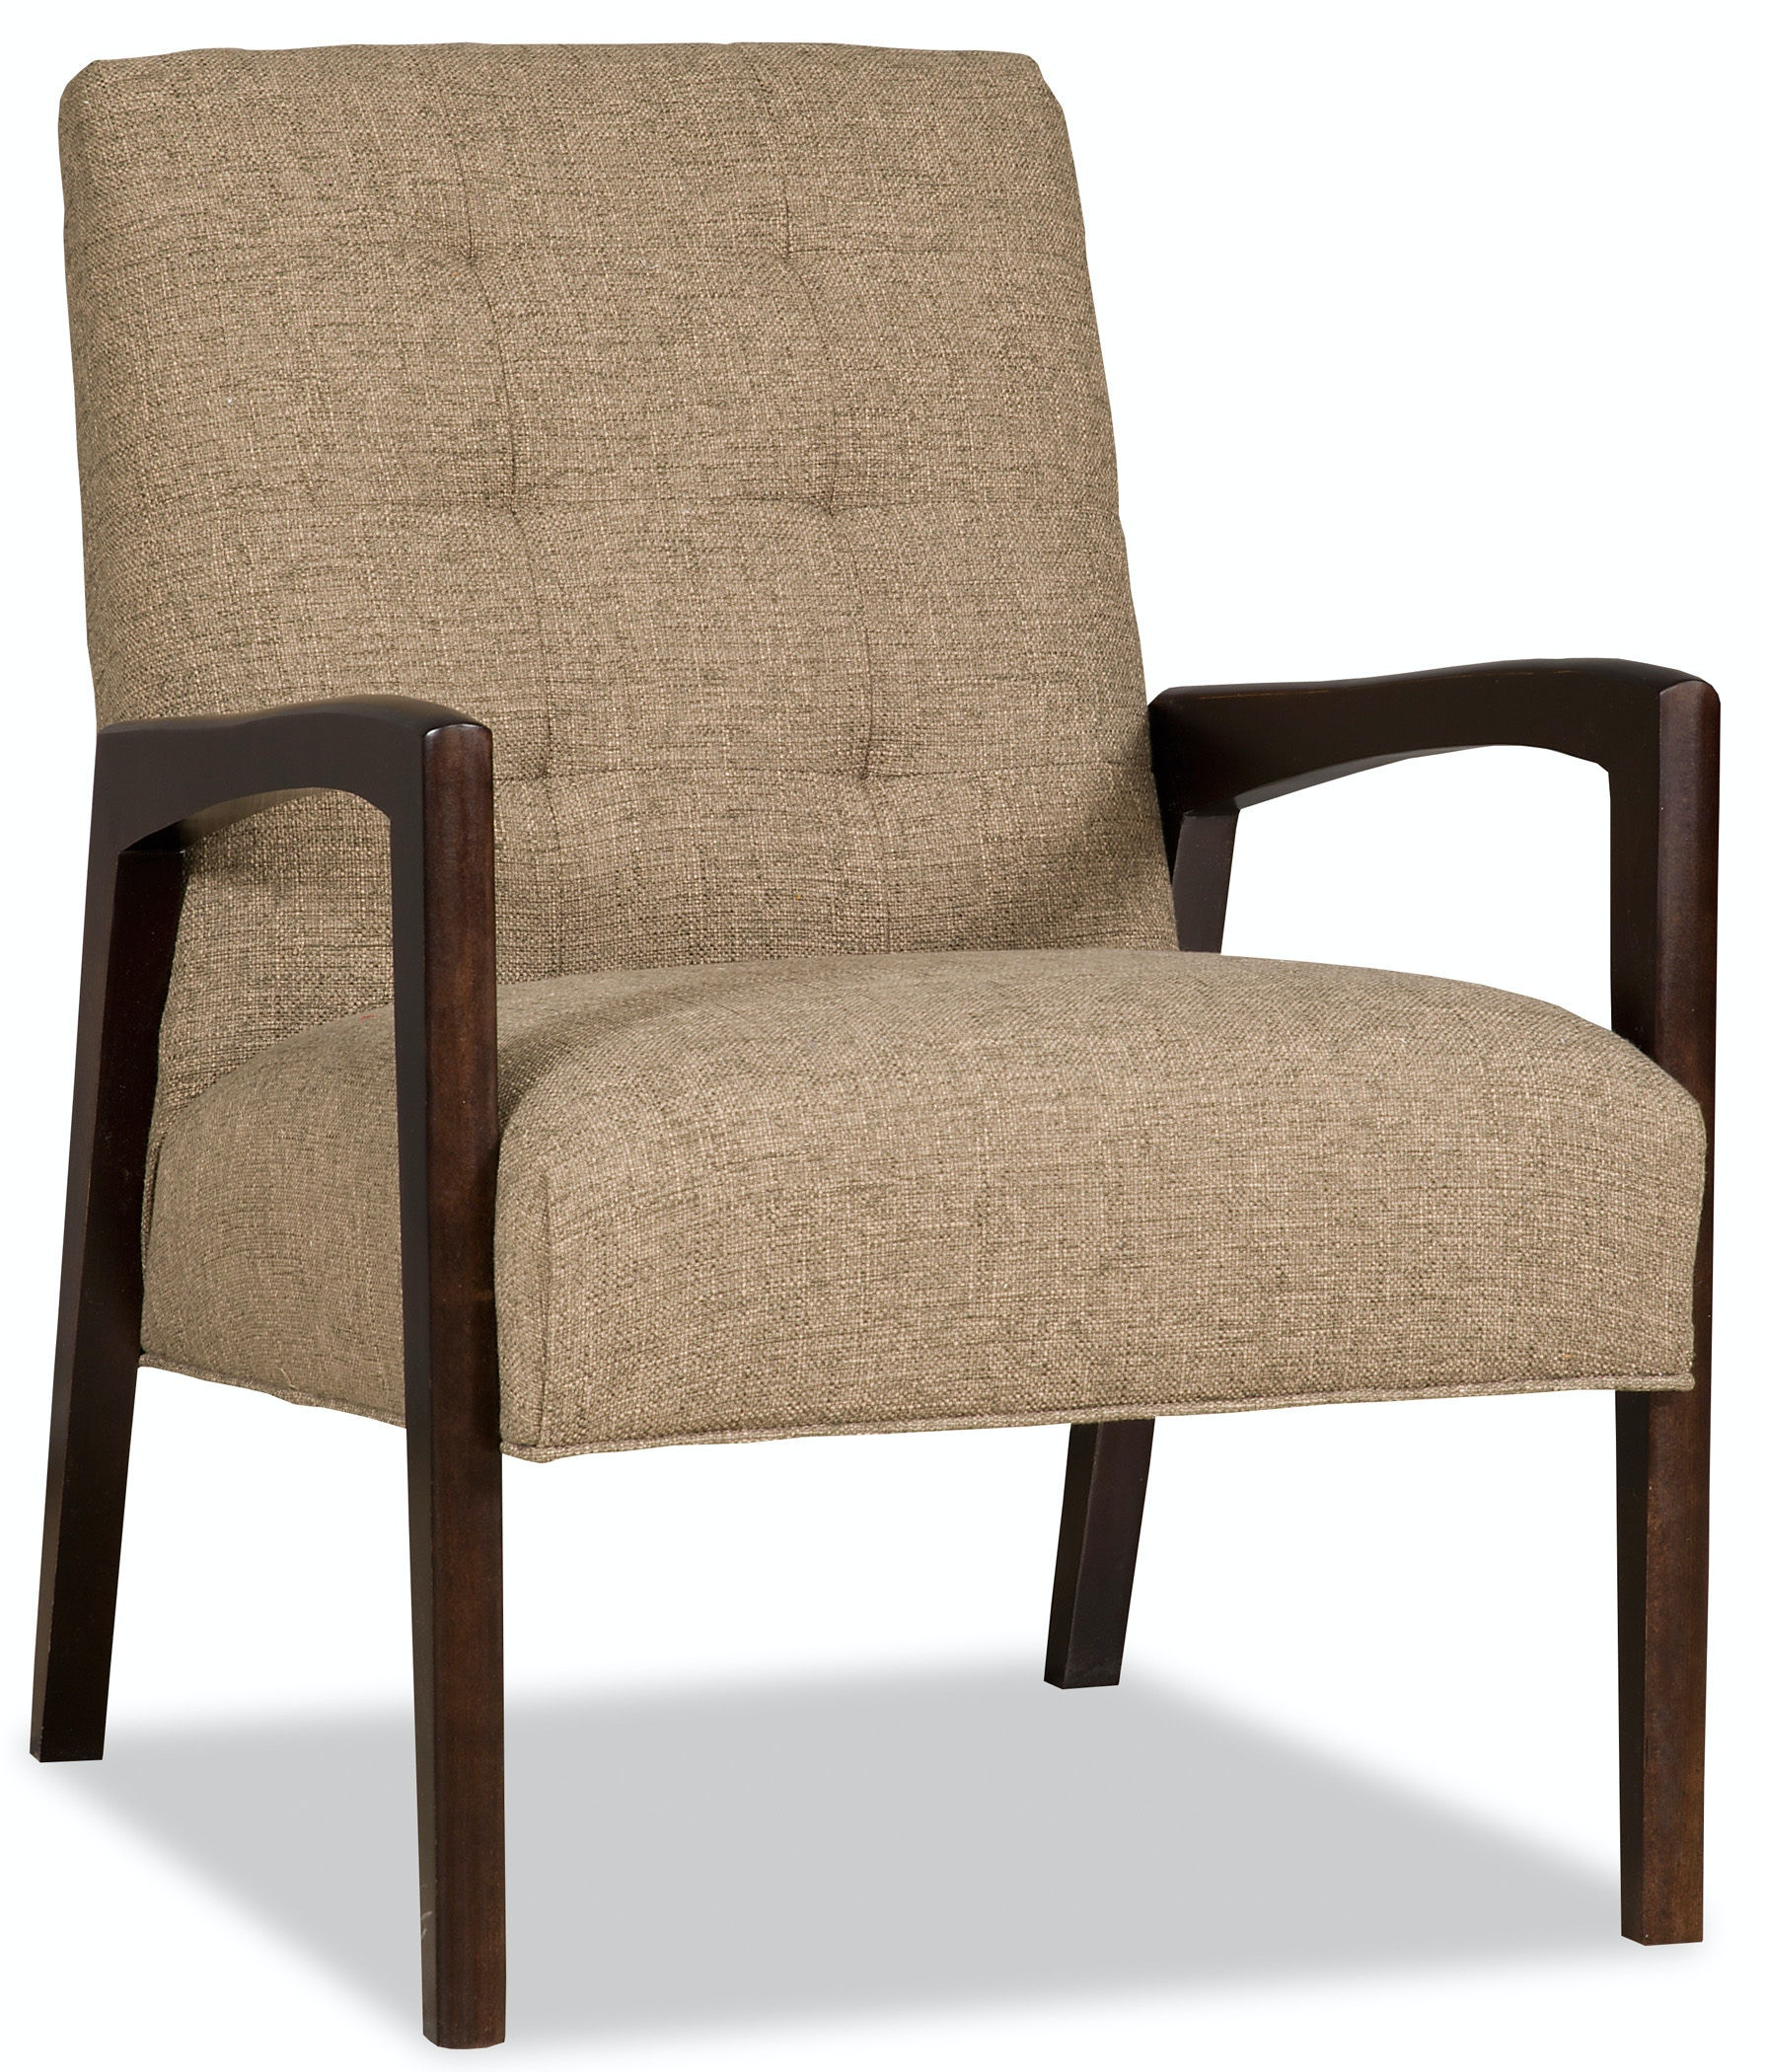 Sam Moore Living Room Chair Wood Arm Gordon 4682 At Naturwood Home  Furnishings